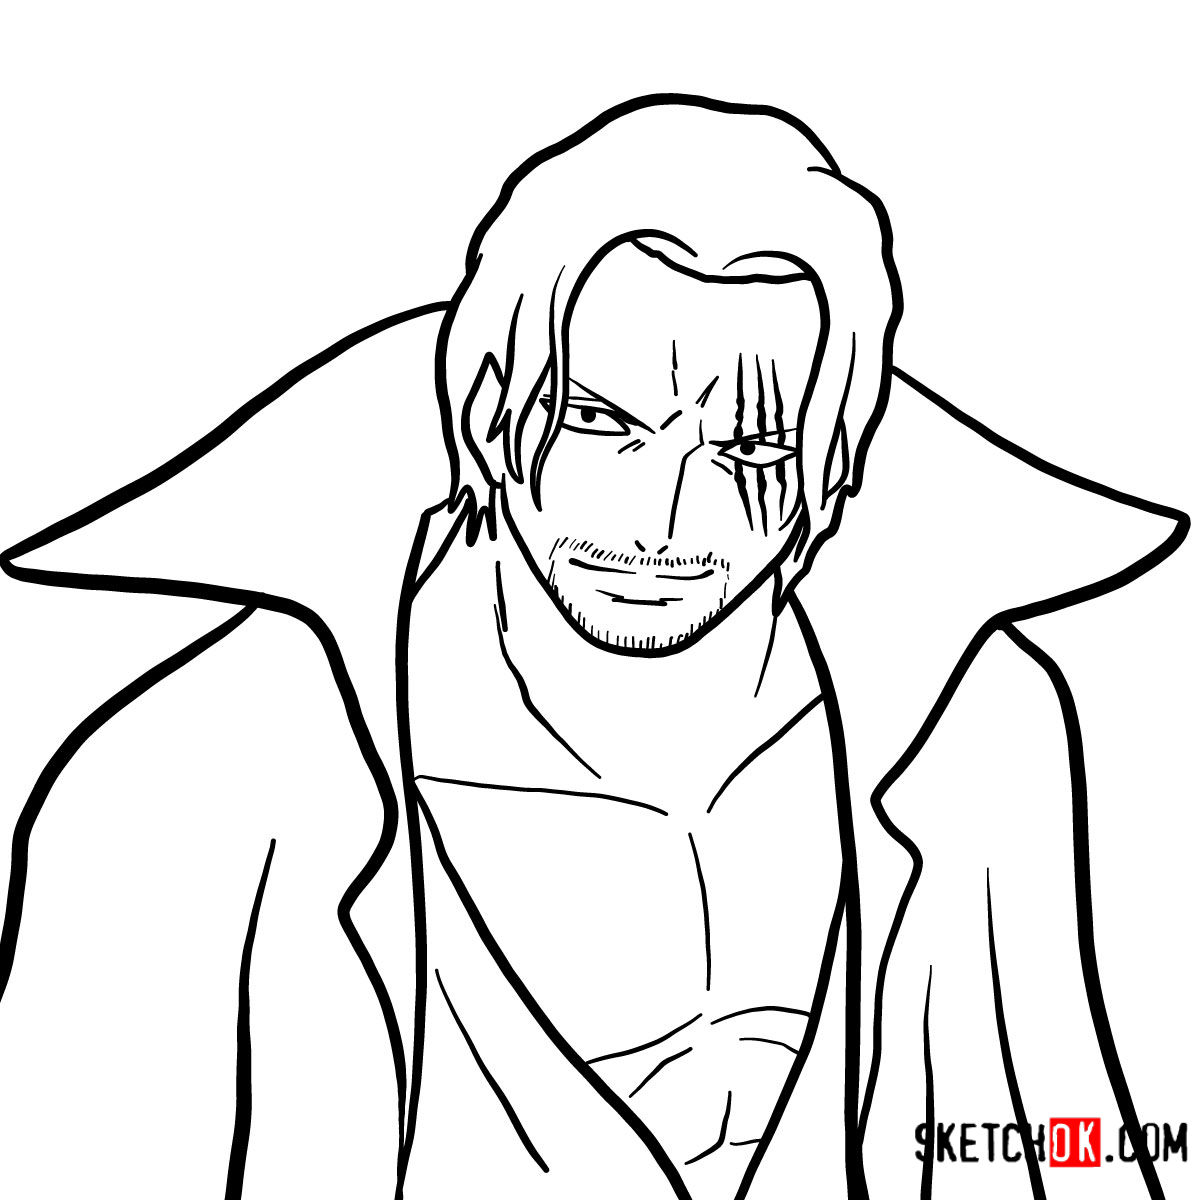 How to draw Shanks | One Piece